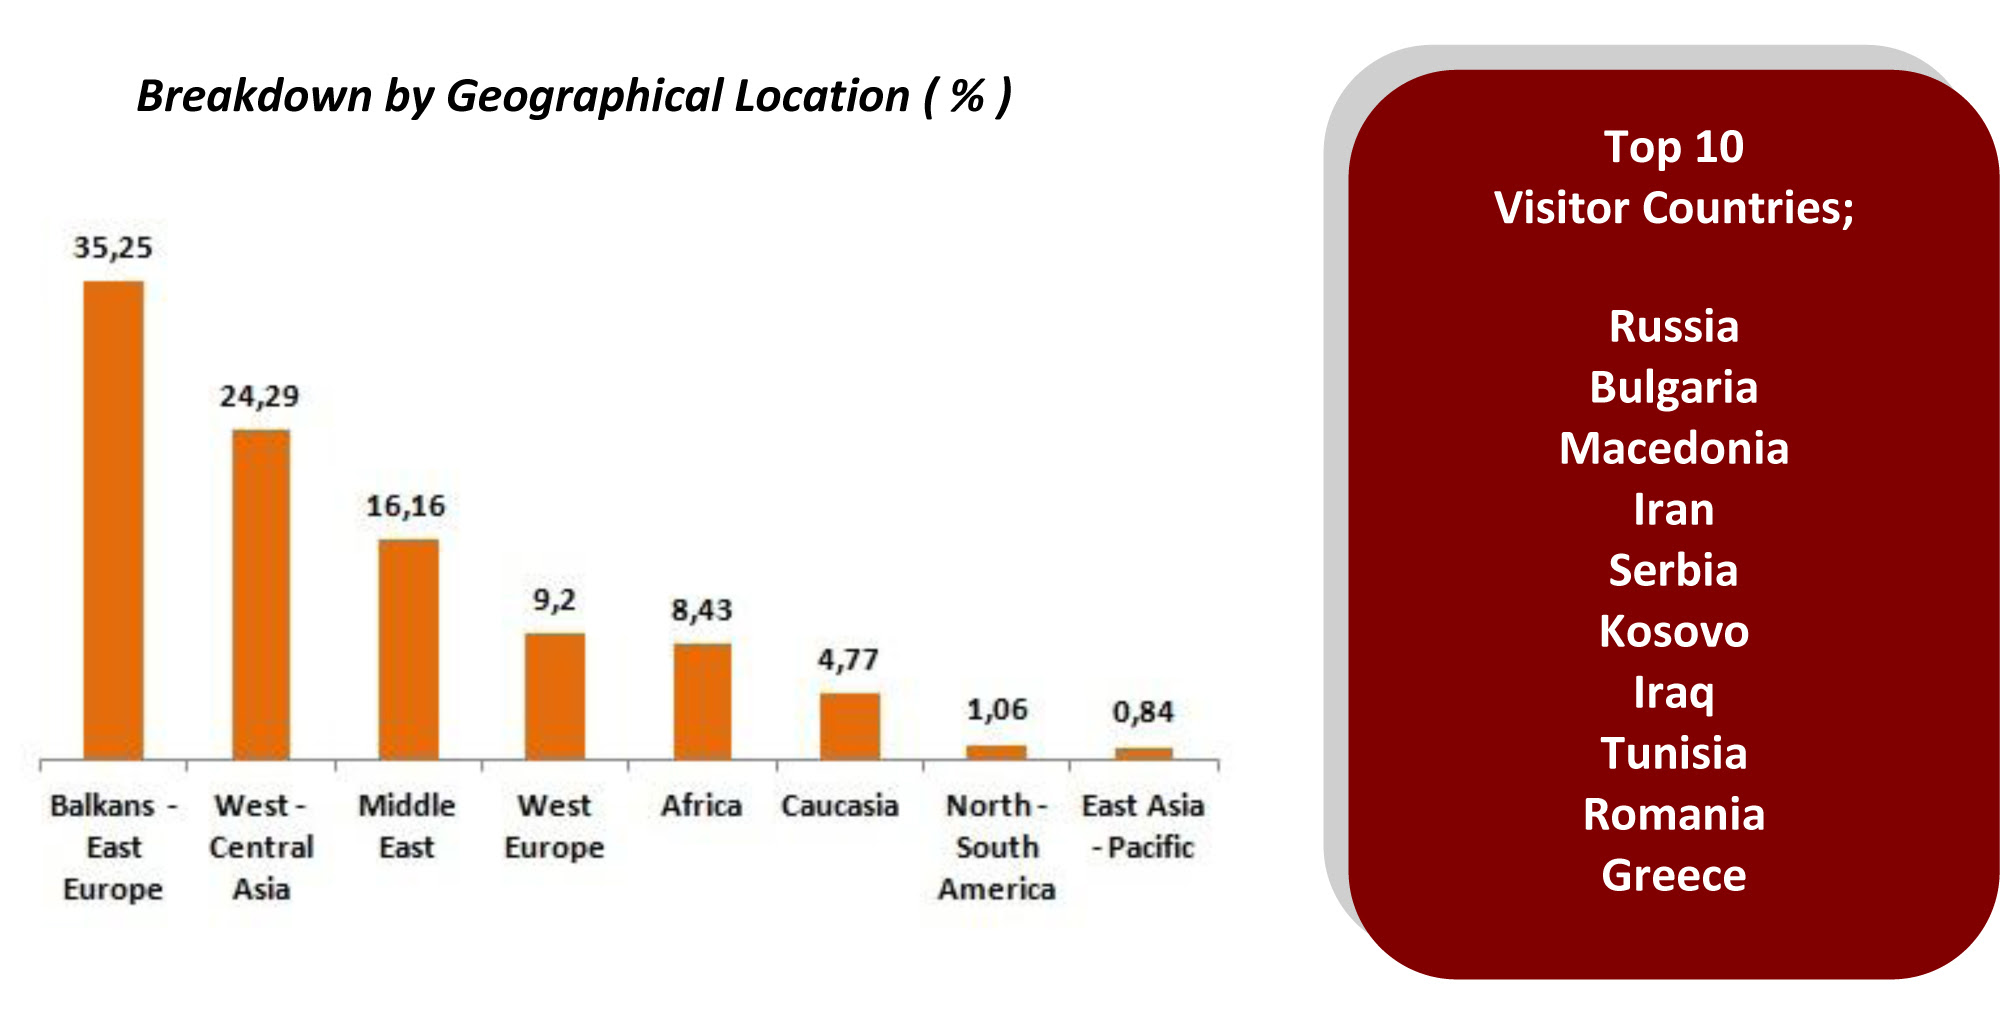 GEOGRAPHICAL BREAKDOWN